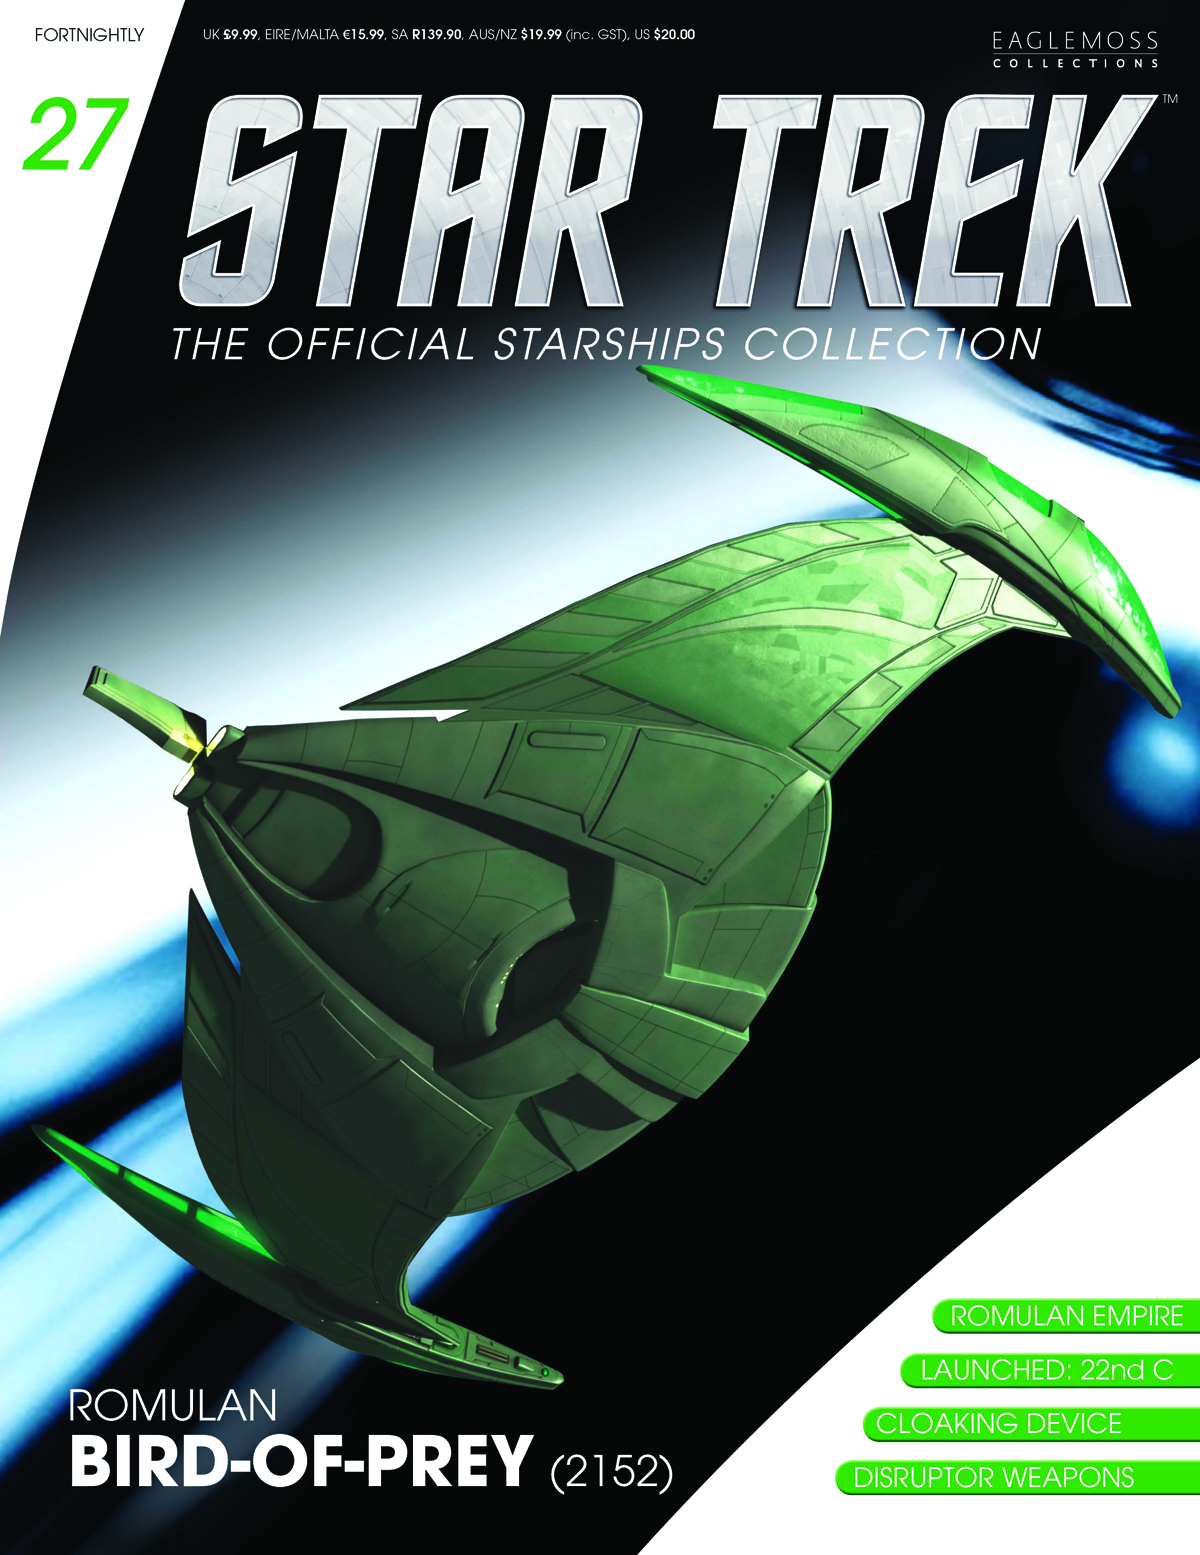 STAR TREK STARSHIPS FIG MAG #27 ROMULAN BIRD OF PREY 2152